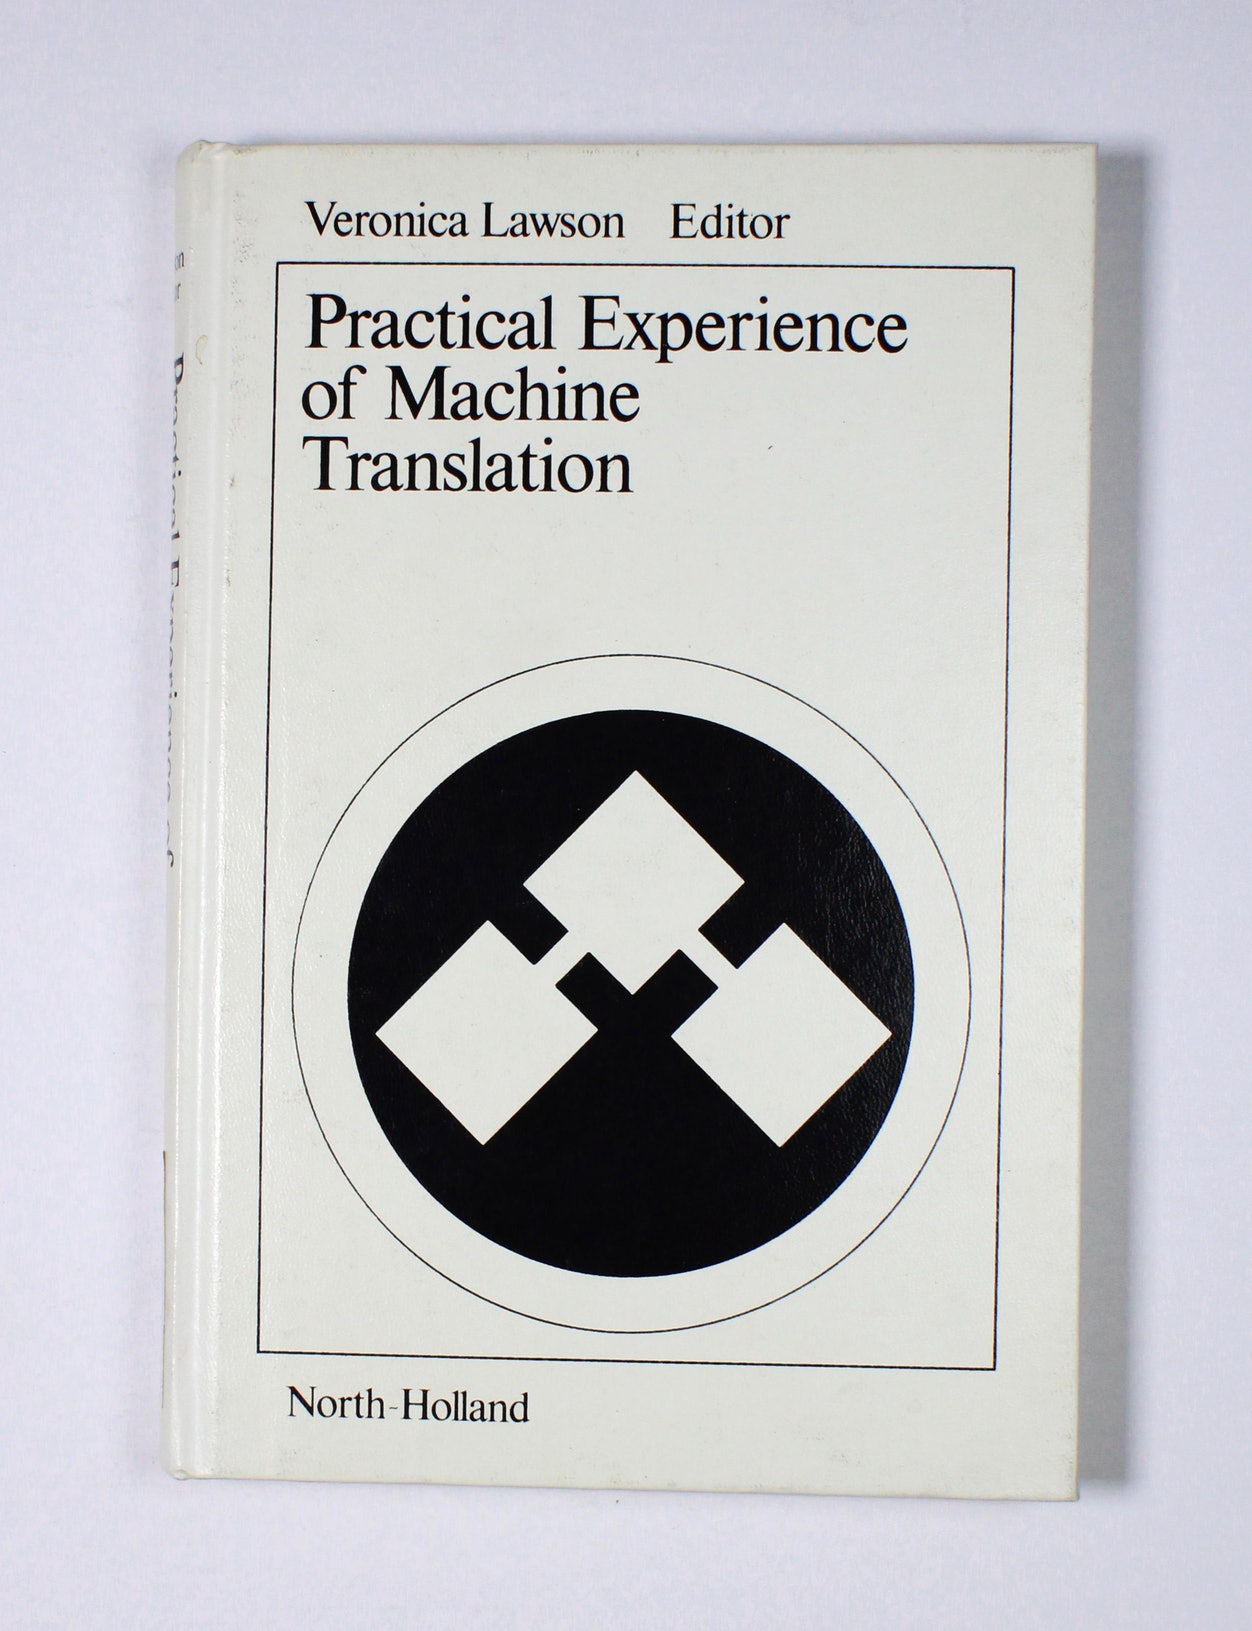 Practical Experience of Machine Translation